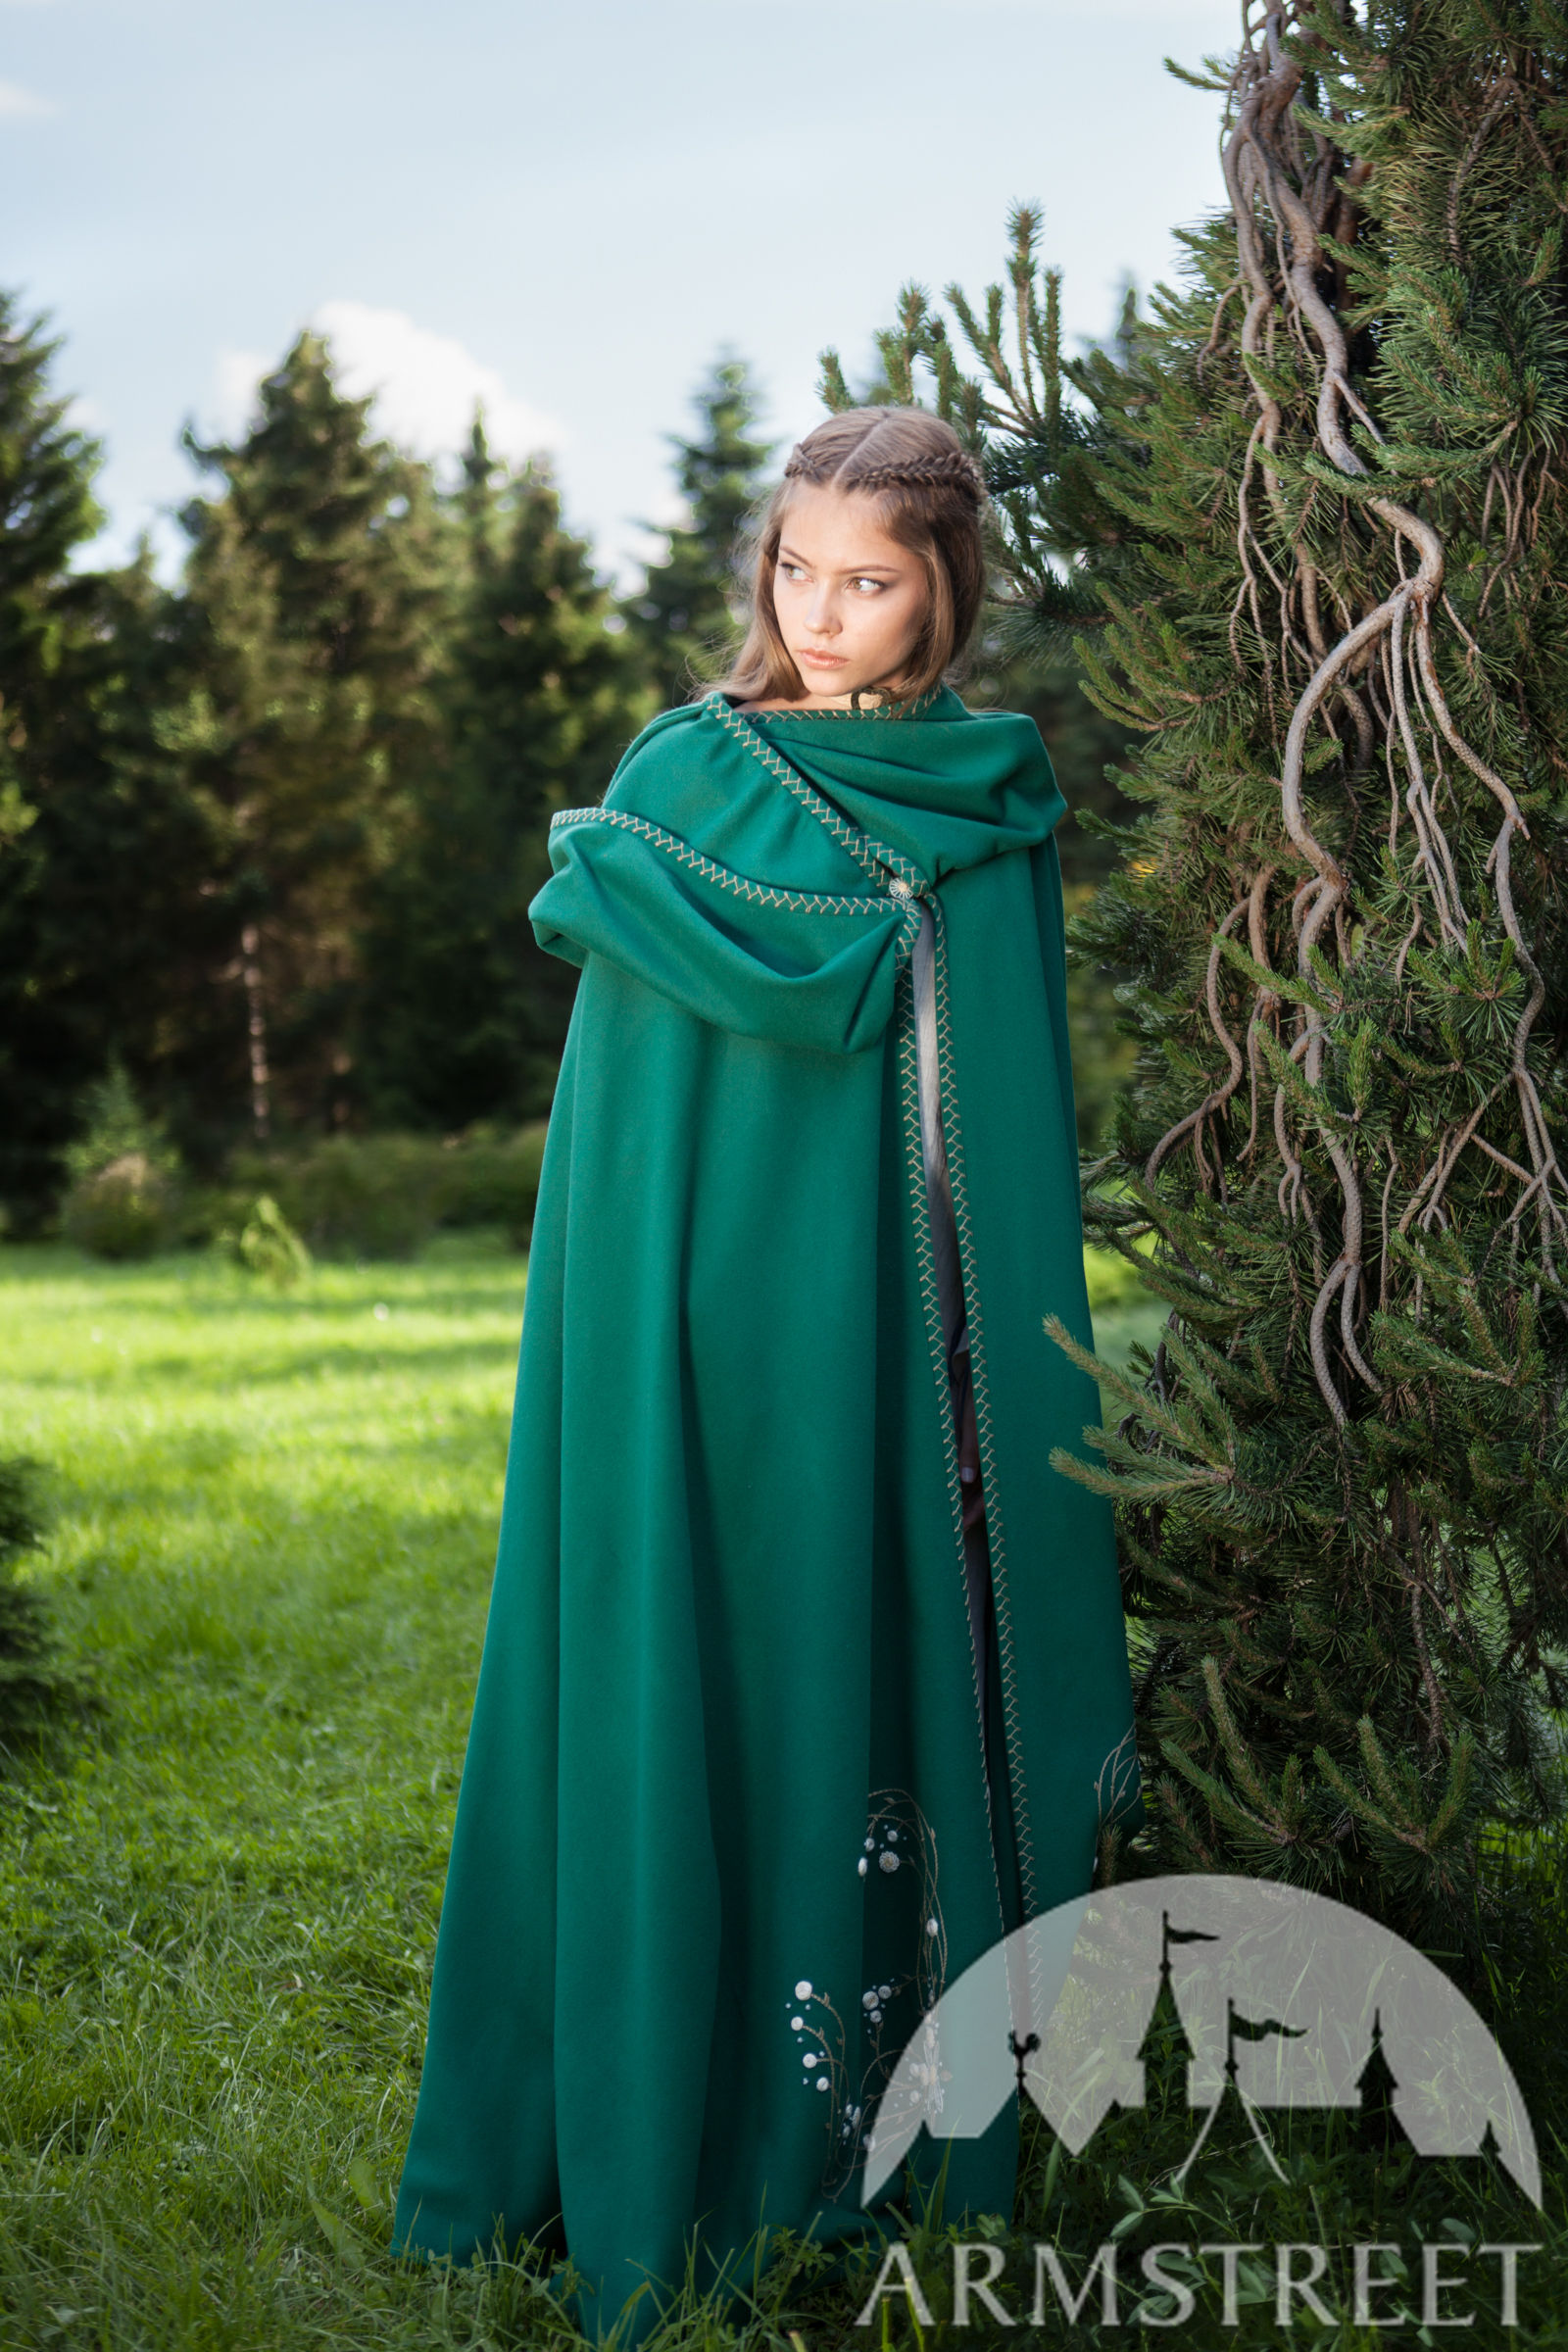 Fairy Tale Linen Dress Wool Cloak And Jewelry Armstreet